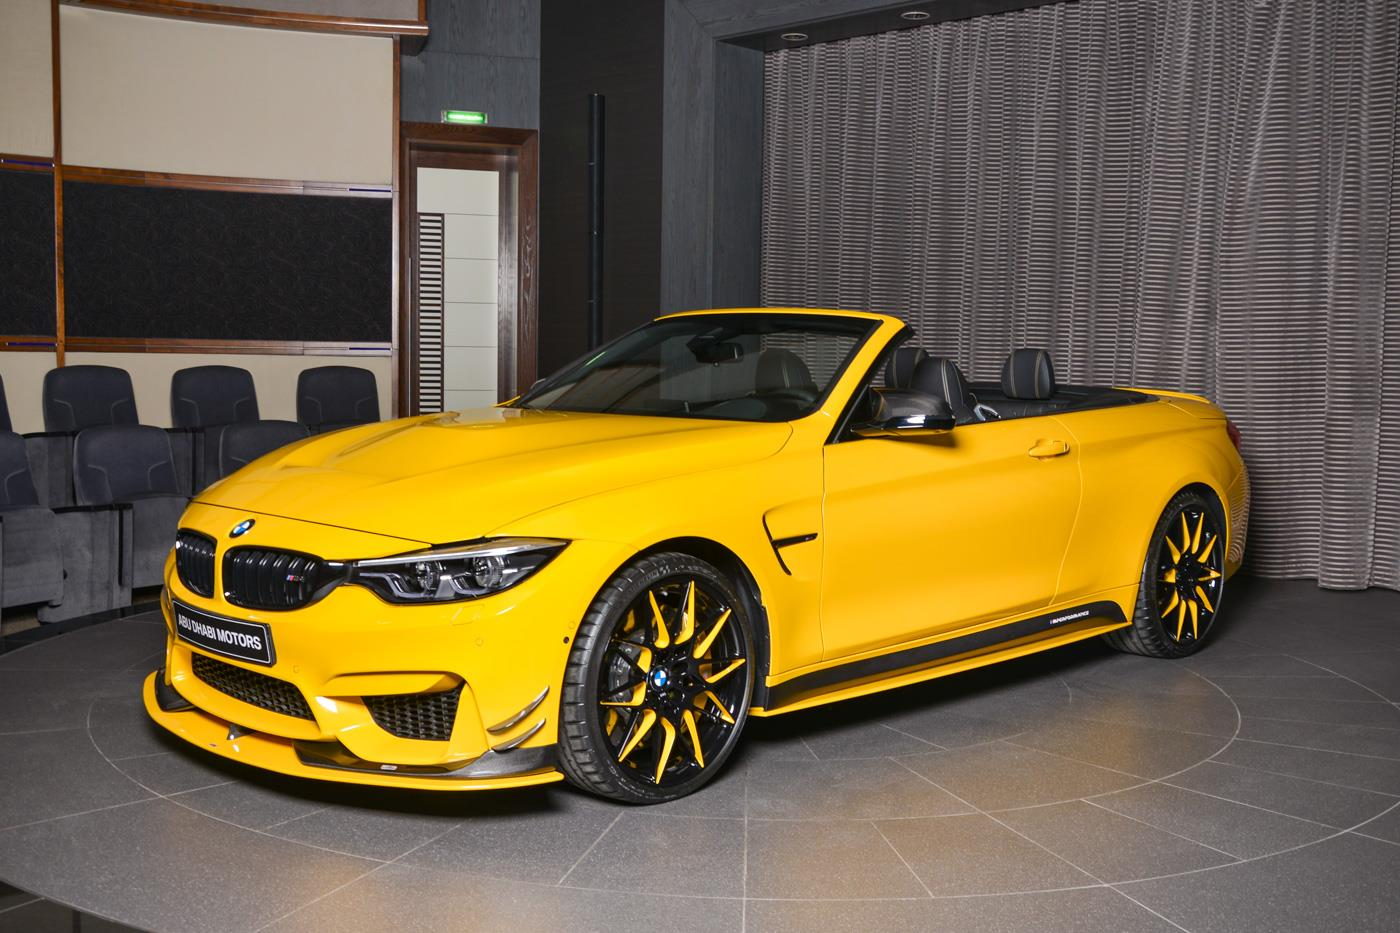 bmw m4 cabrio has speed yellow paint ac schnitzer kit and gts hood autoevolution. Black Bedroom Furniture Sets. Home Design Ideas